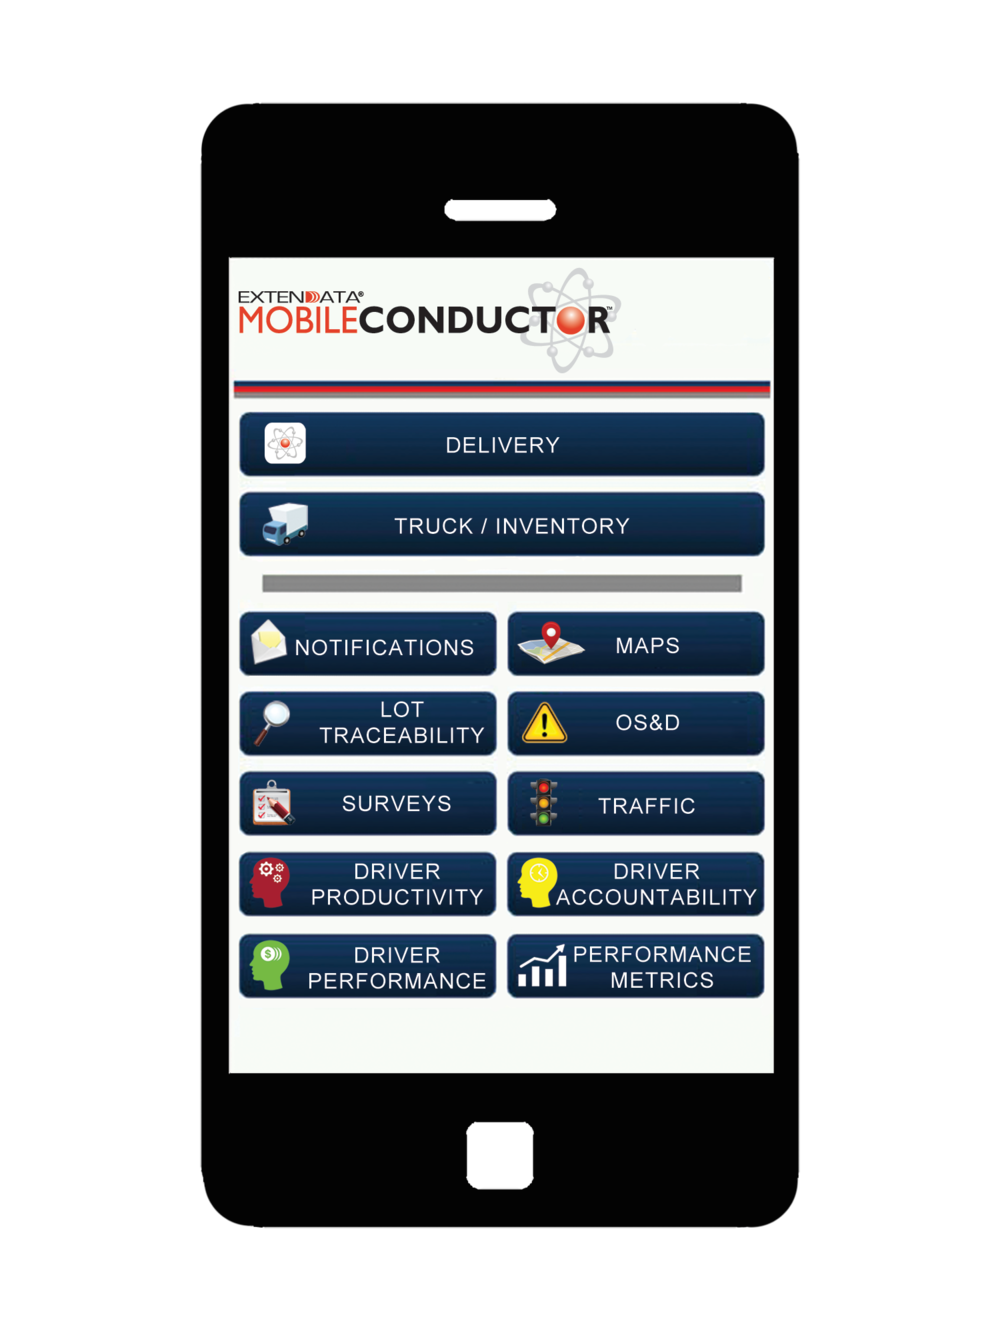 MobileConductor Direct Store Delivery, DSD, Proof of Delivery, Bulk Transport delivery software platform